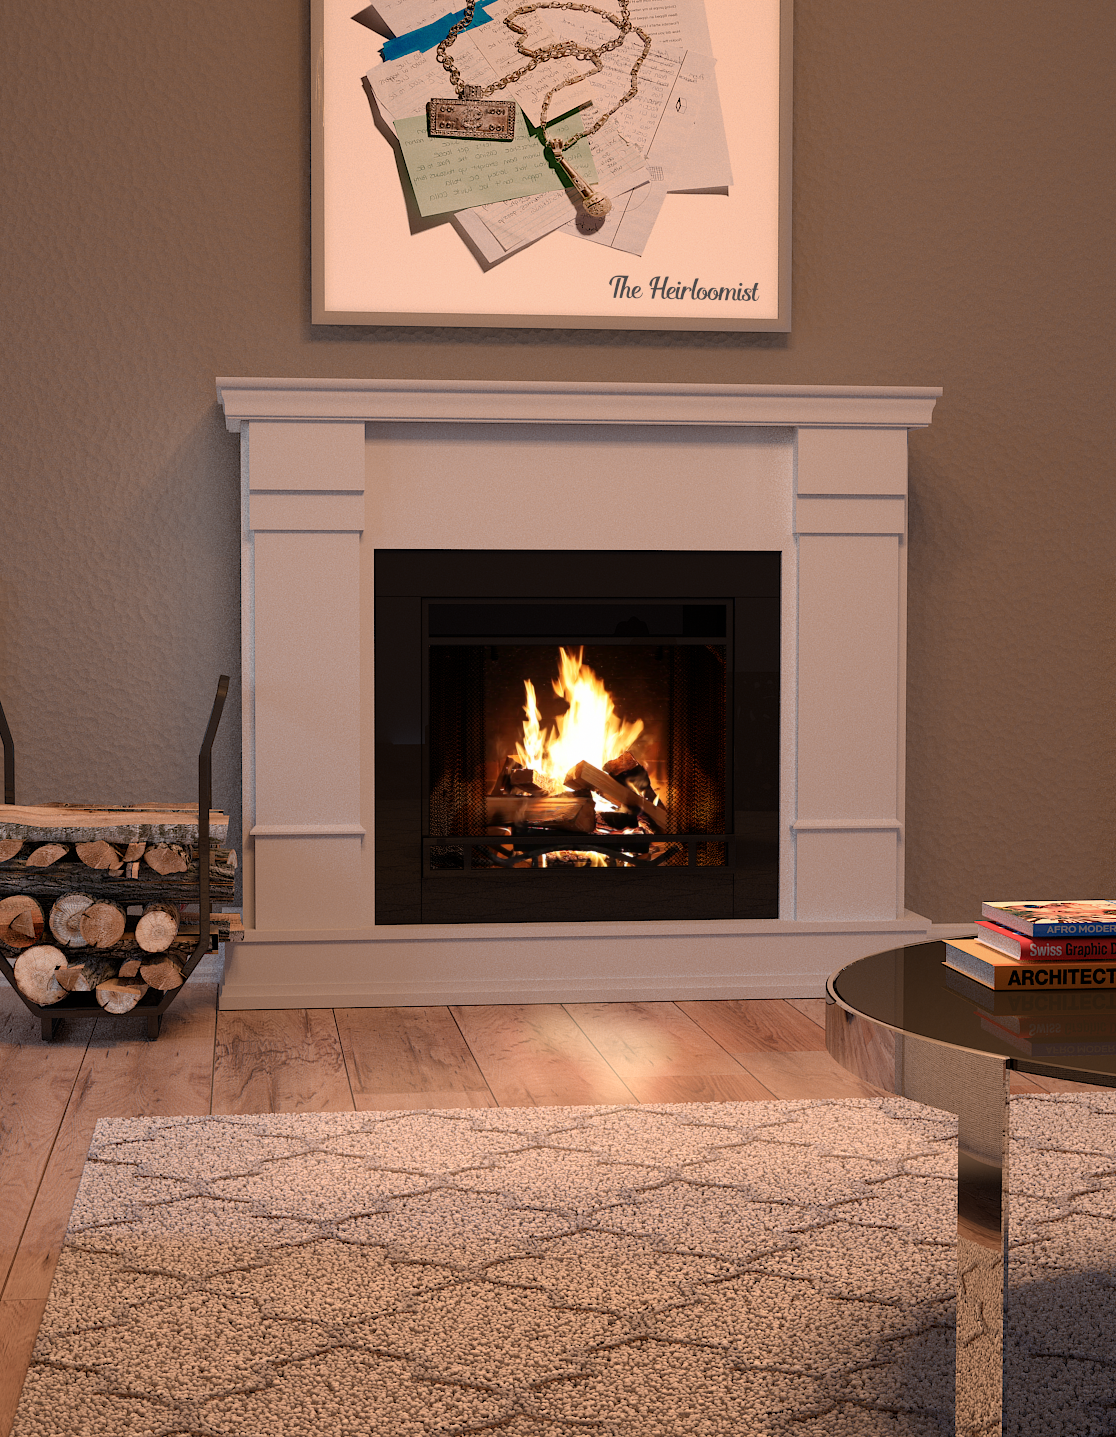 Curb Key Lowes : lowes, Flame, 48-in, White, Electric, Fireplace, Lowes.com, Fireplace,, Home,, Remodel